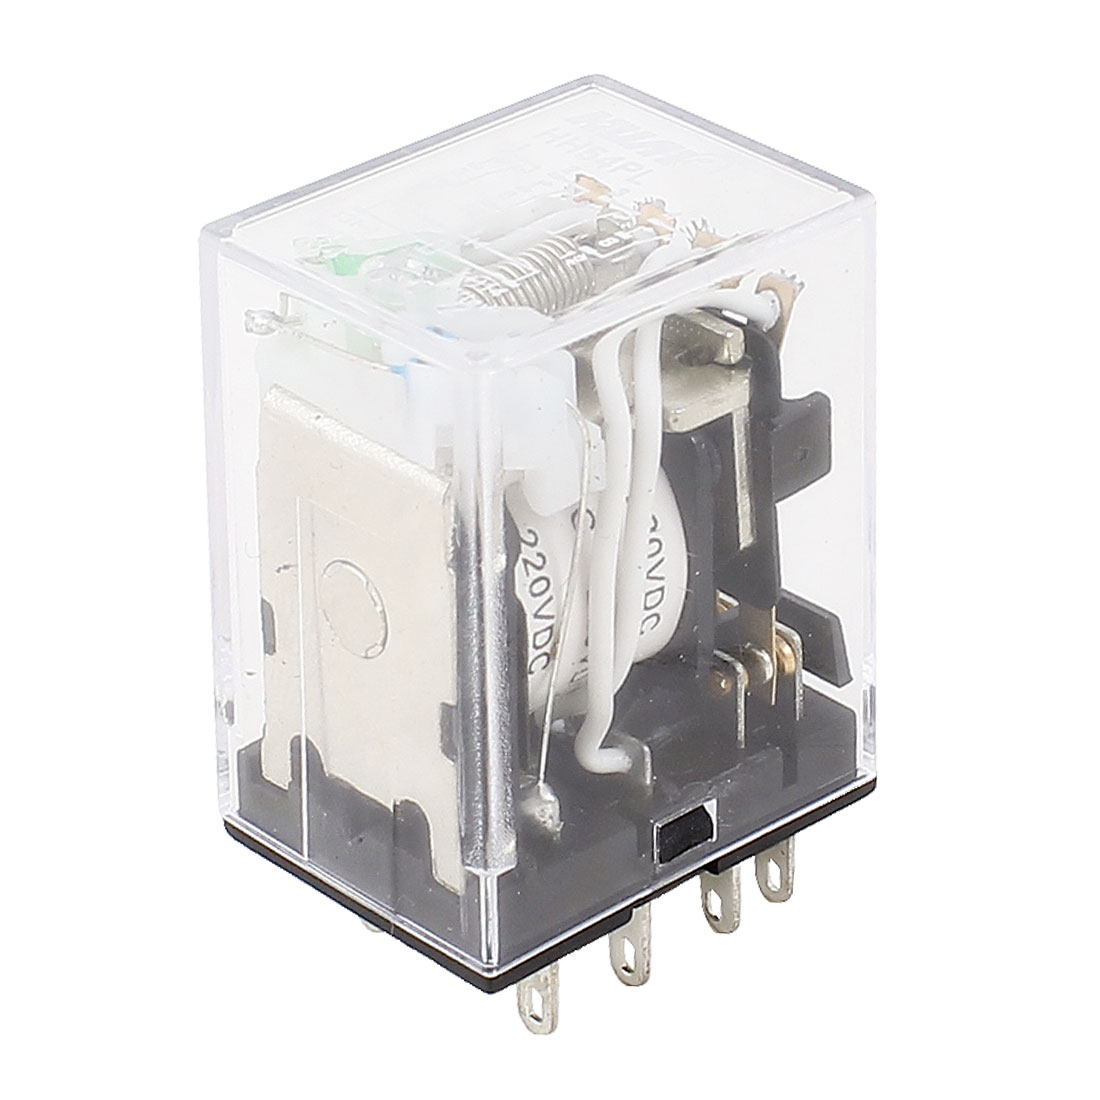 HH54PL DC 220V Coil 4P2T Green LED Lamp Light General Purpose Power Relay